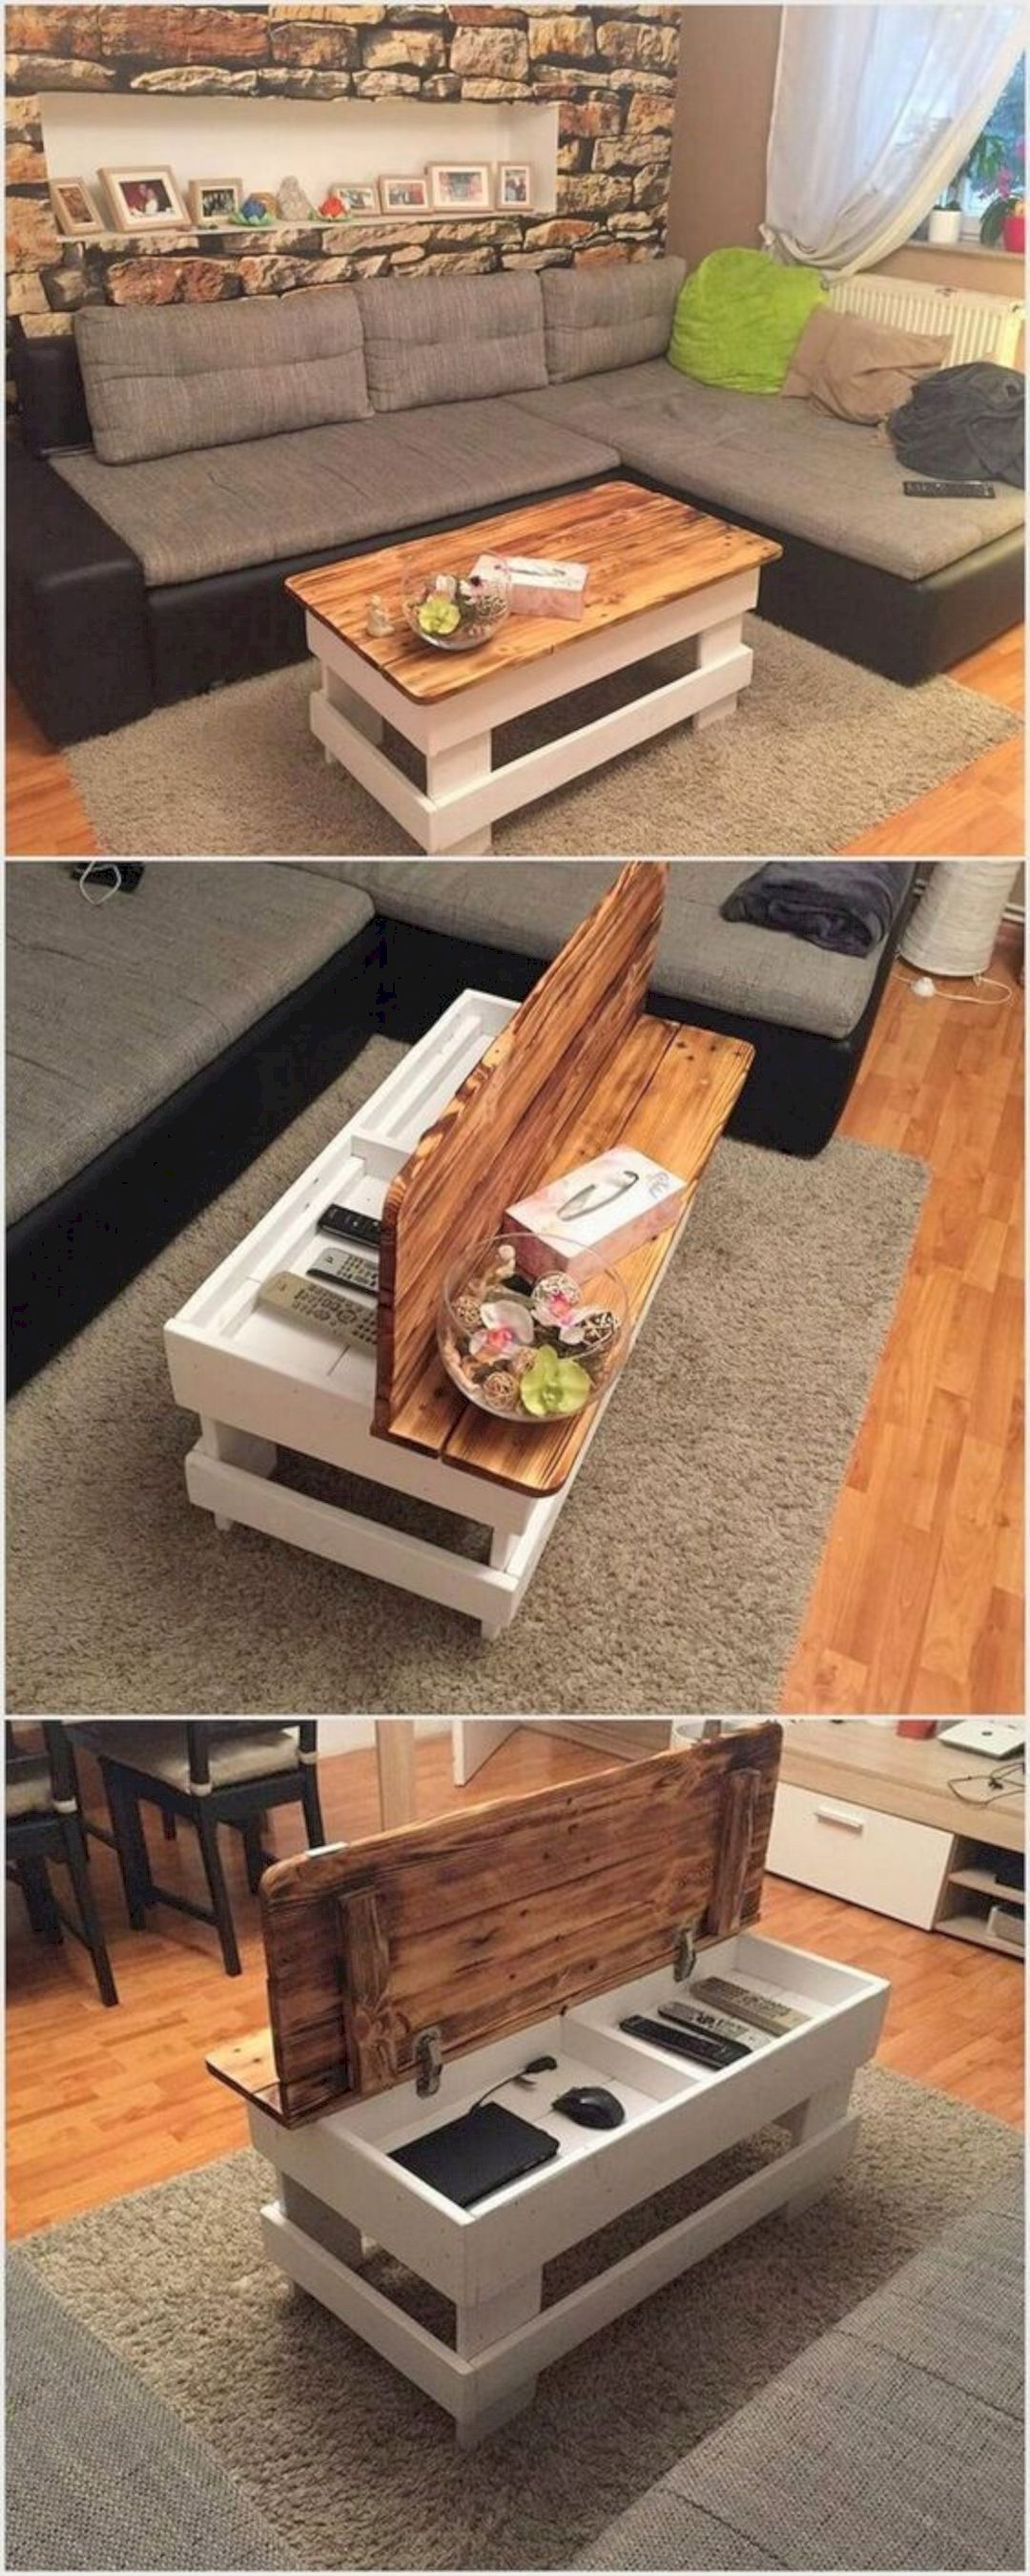 excellent and creative ideas for pallet furniture inside home